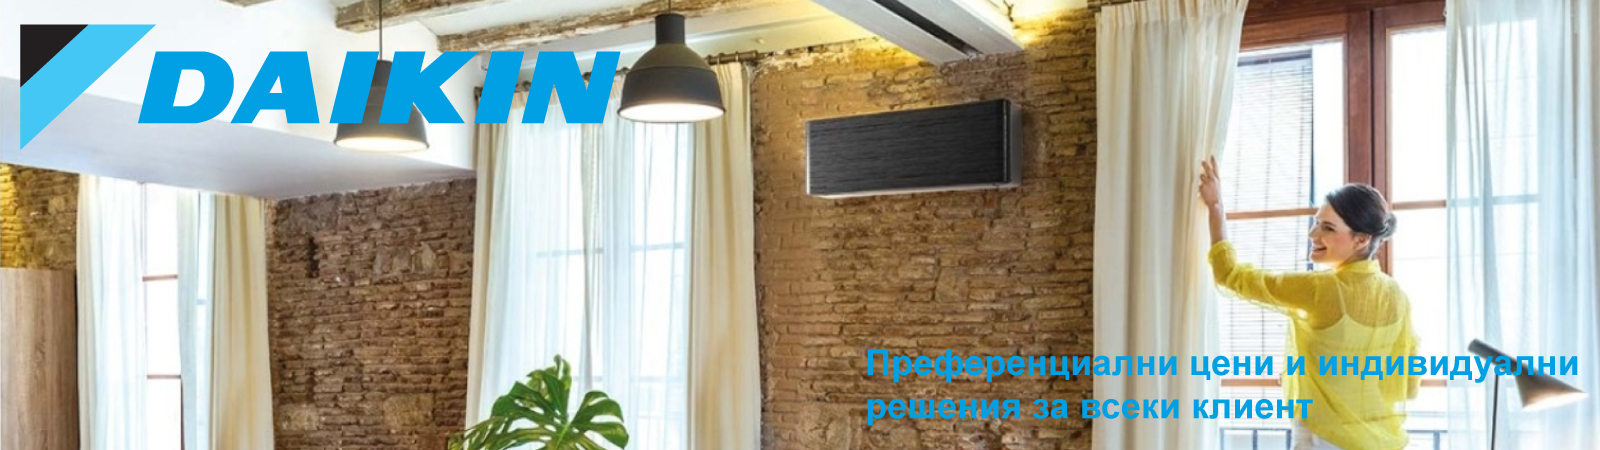 daikin_banner_stylish